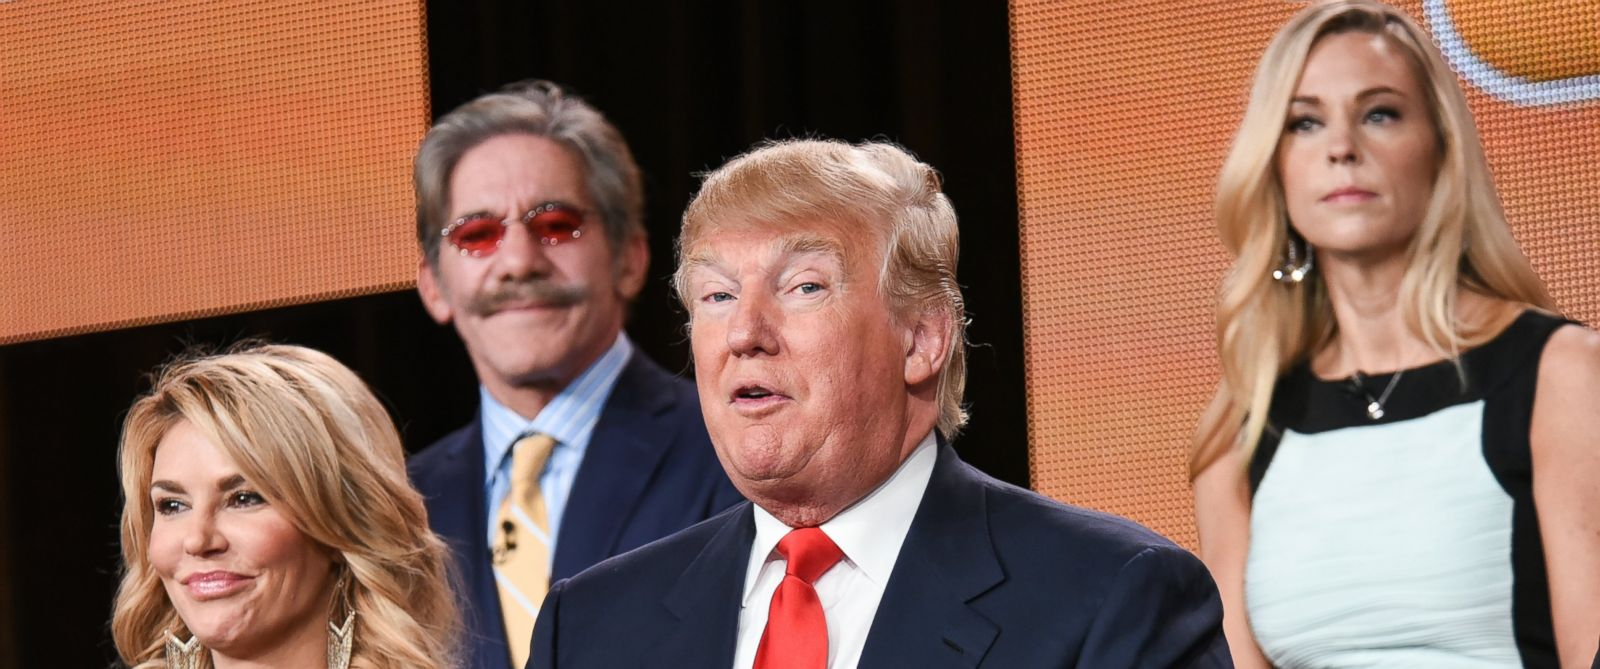 donald trump to remain an executive producer on celebrity